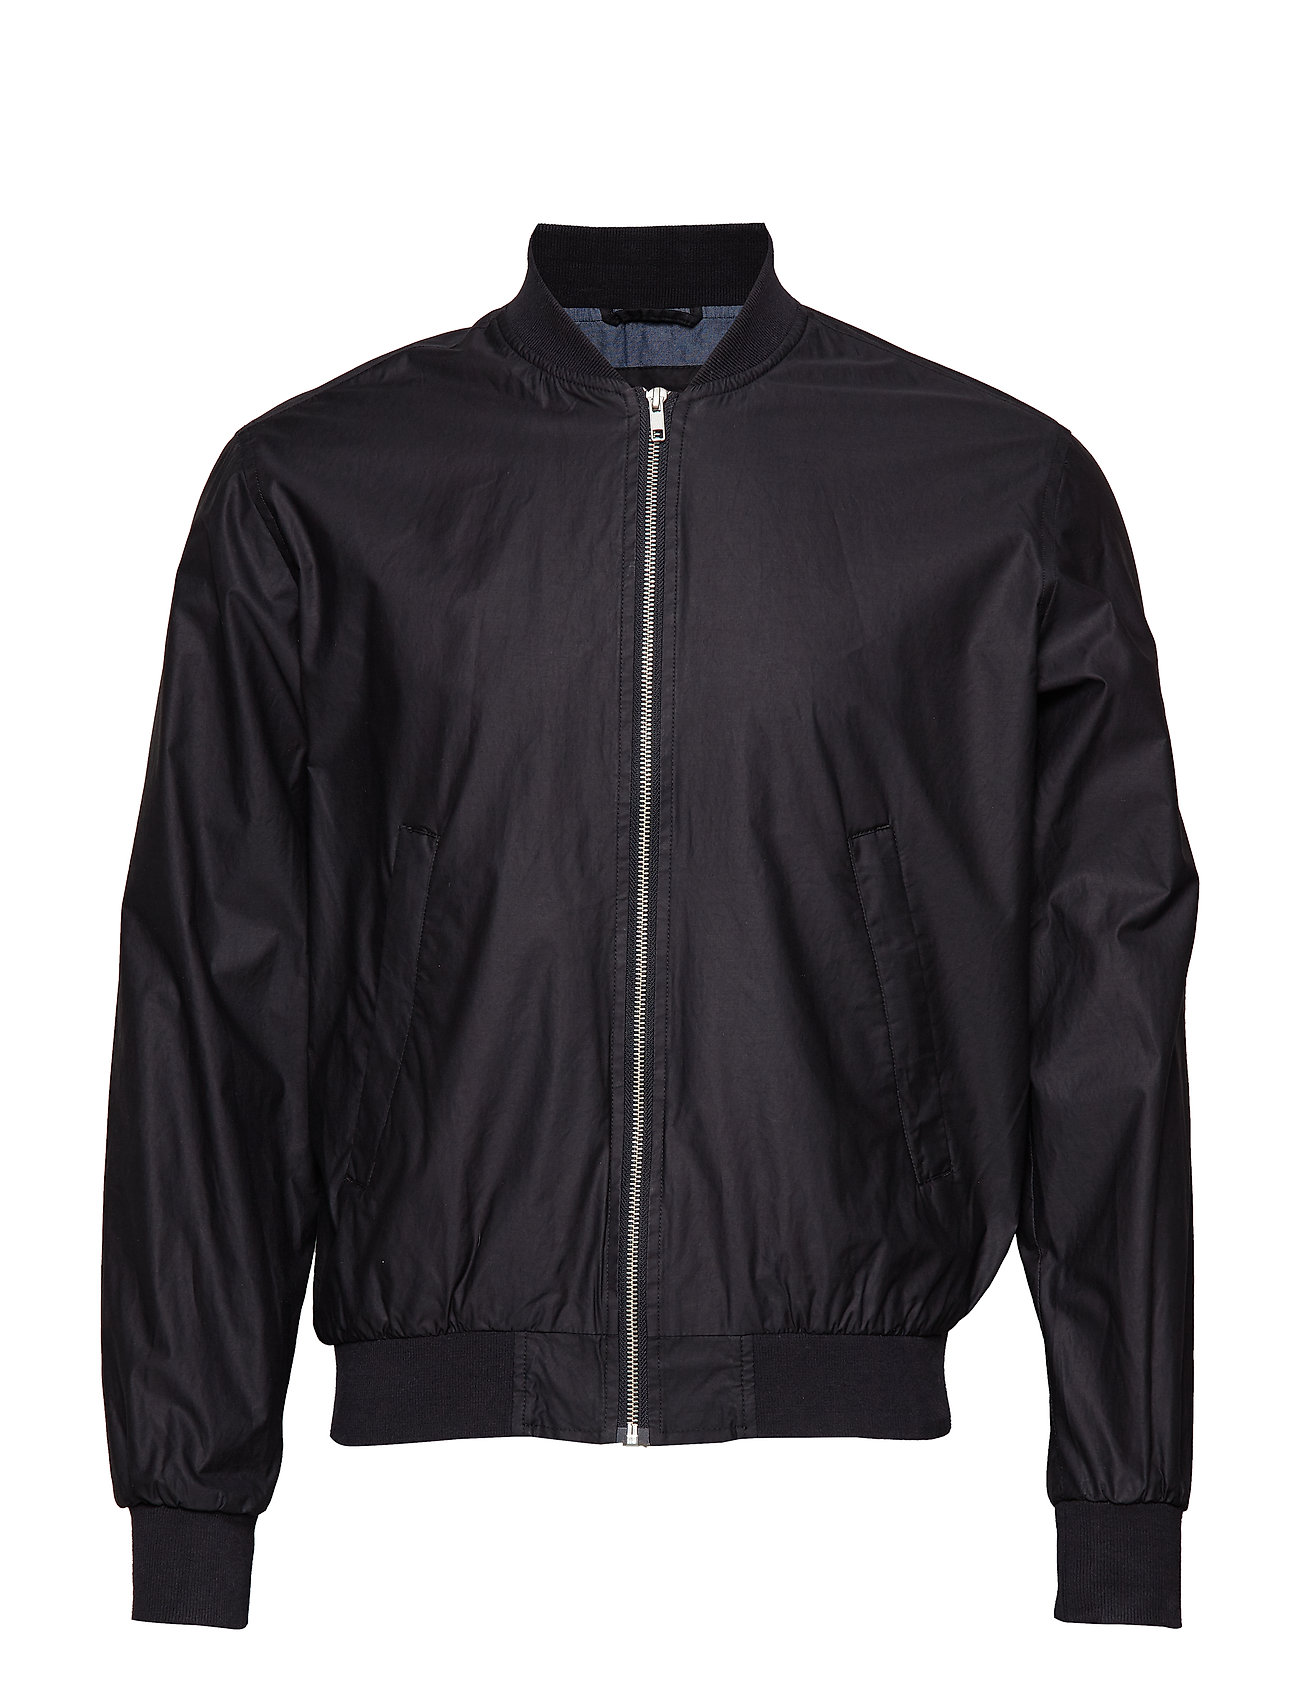 Makia DEPARTURE JACKET - DARK NAVY